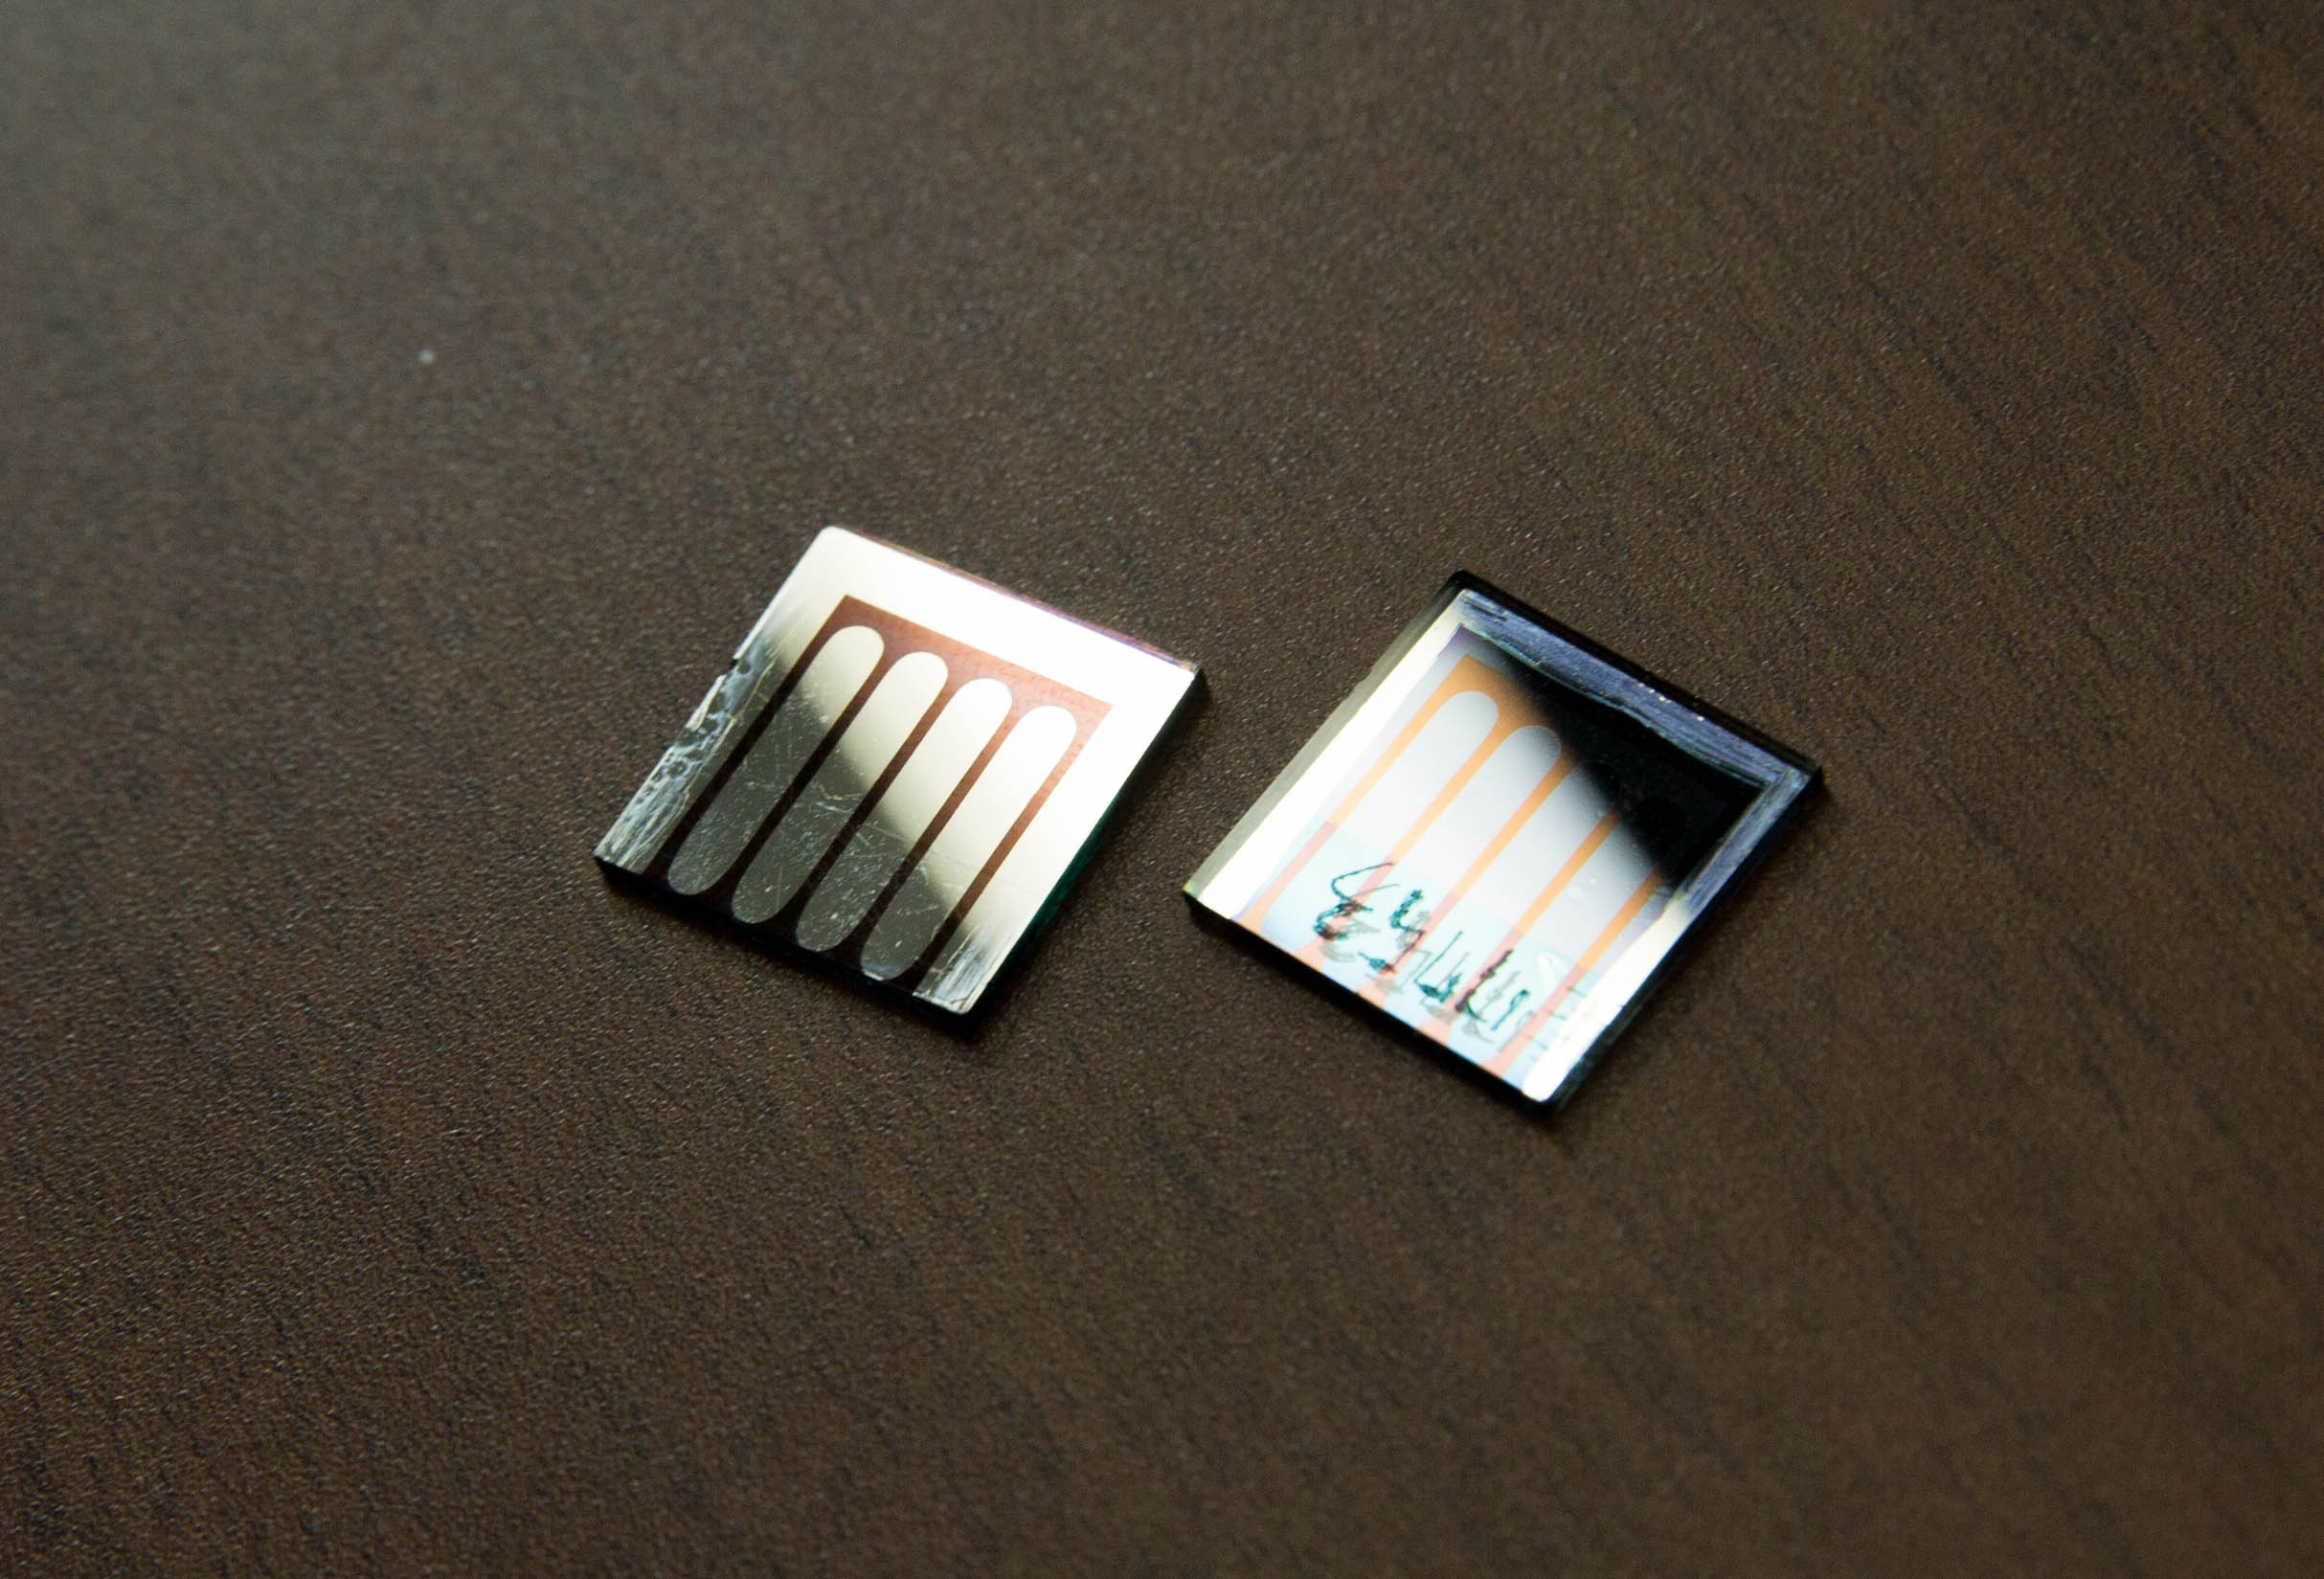 Highly-stable perovskite solar cells